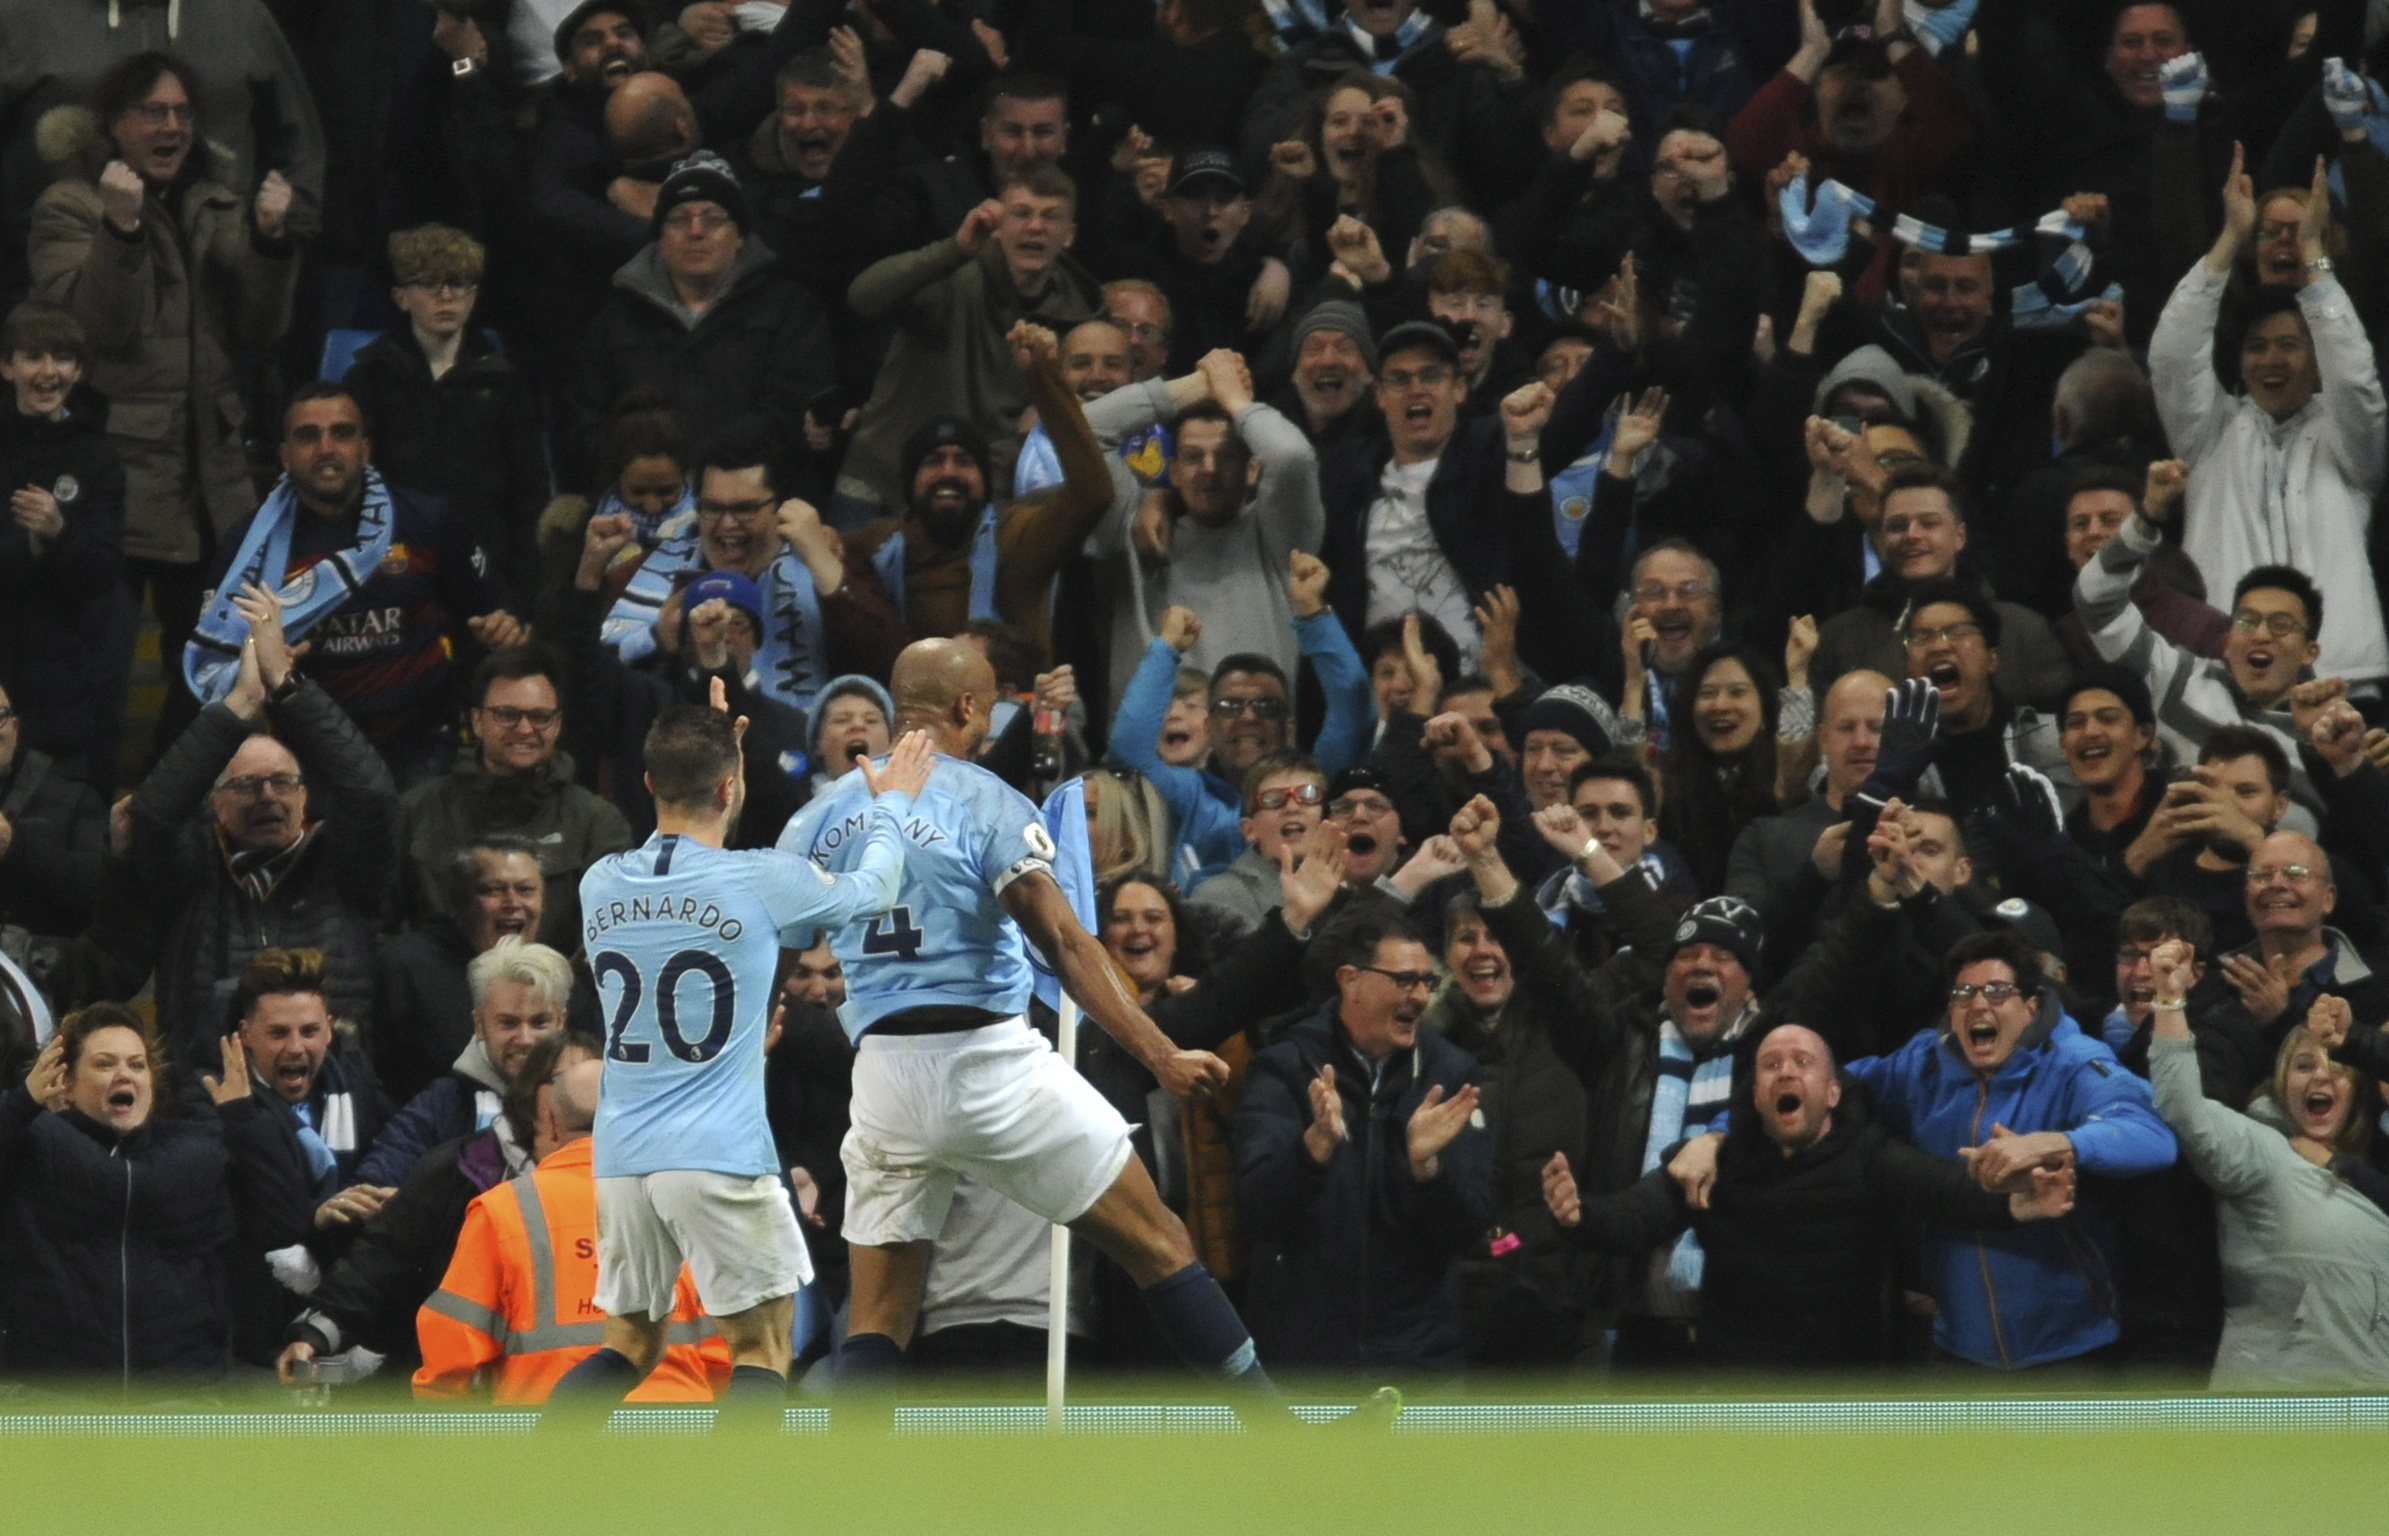 Man City back on top of EPL after Kompany wonder goal